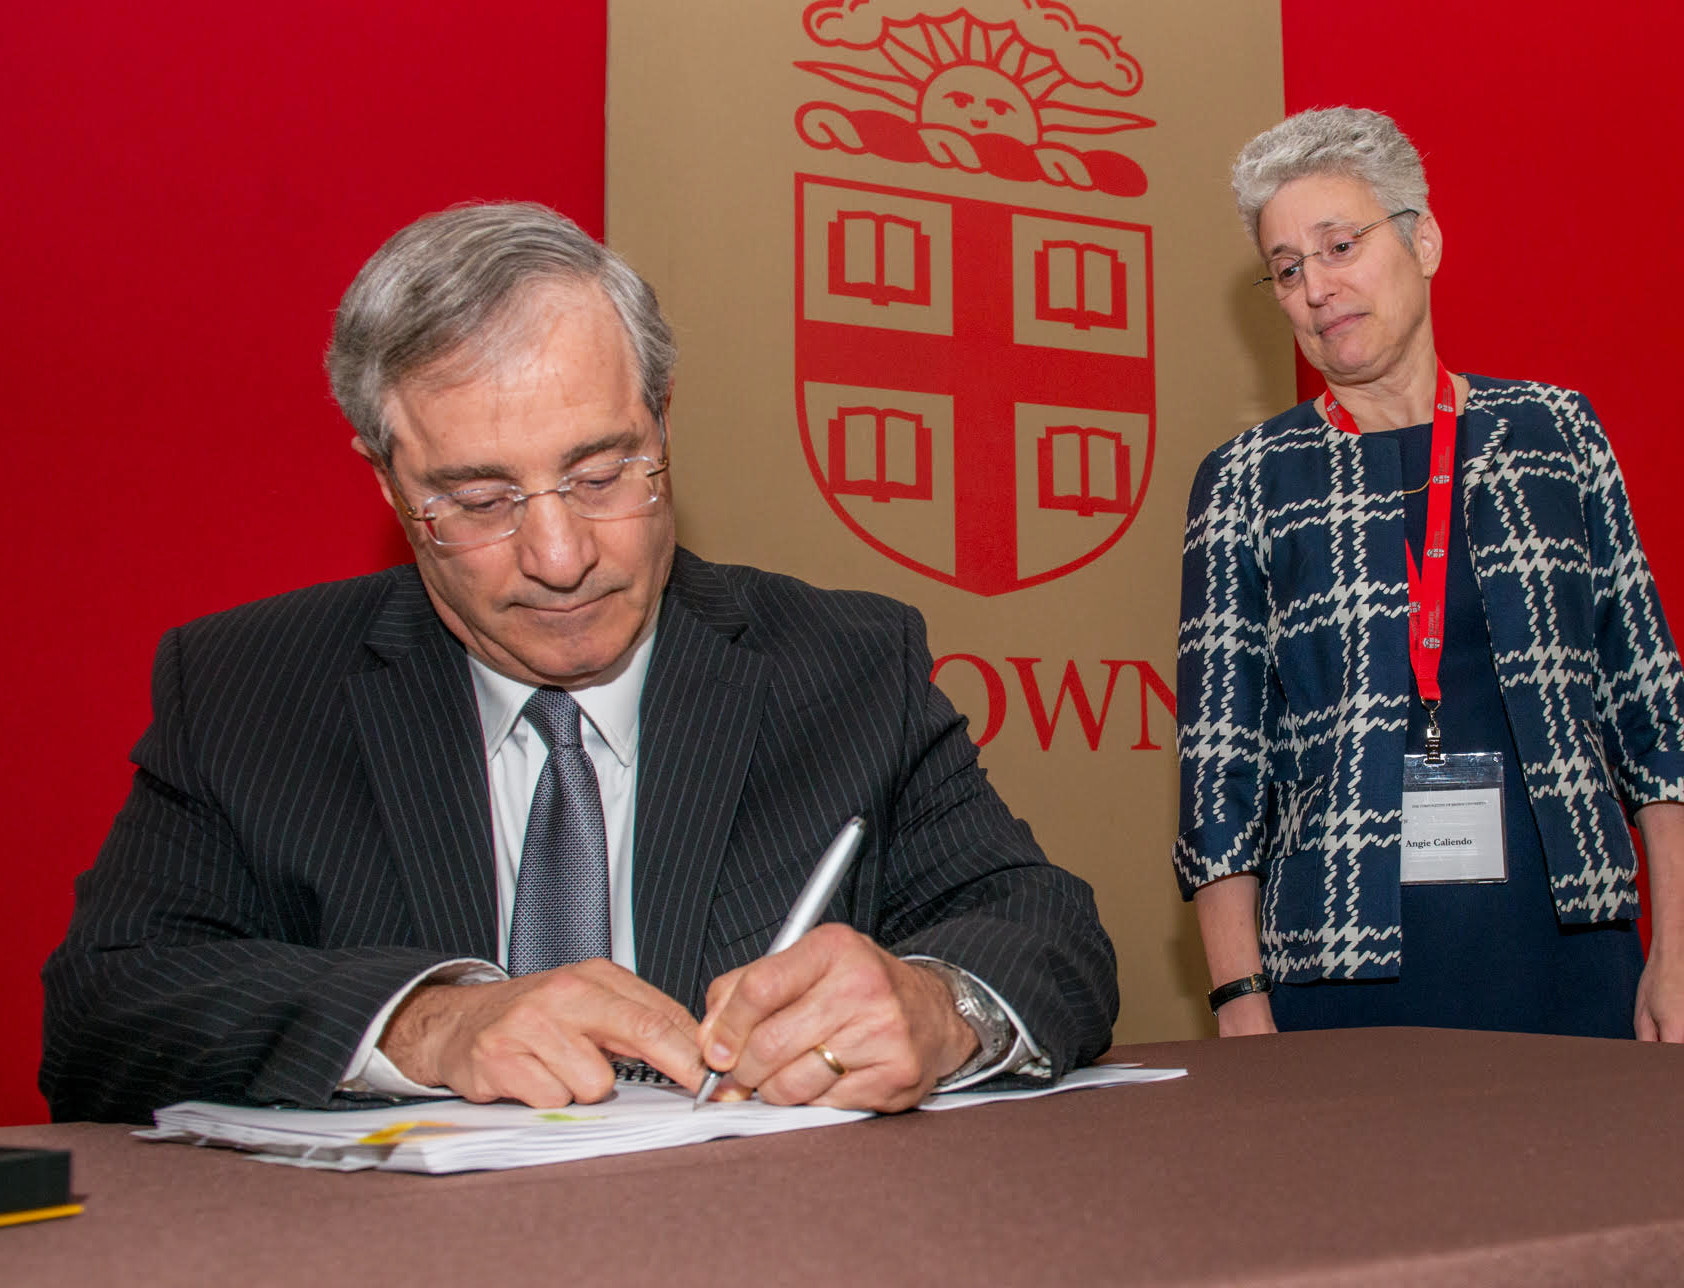 Dr. Jack A. Elias, senior vice president for Health Affairs and dean of Medicine and Biologic Sciences at Brown University, signs a new agreement creating Brown Physicians, Inc., as Dr. Angela Caliendo, vice president of University Medicine Foundation and interim executive director of Brown Physicians, Inc., looks on.